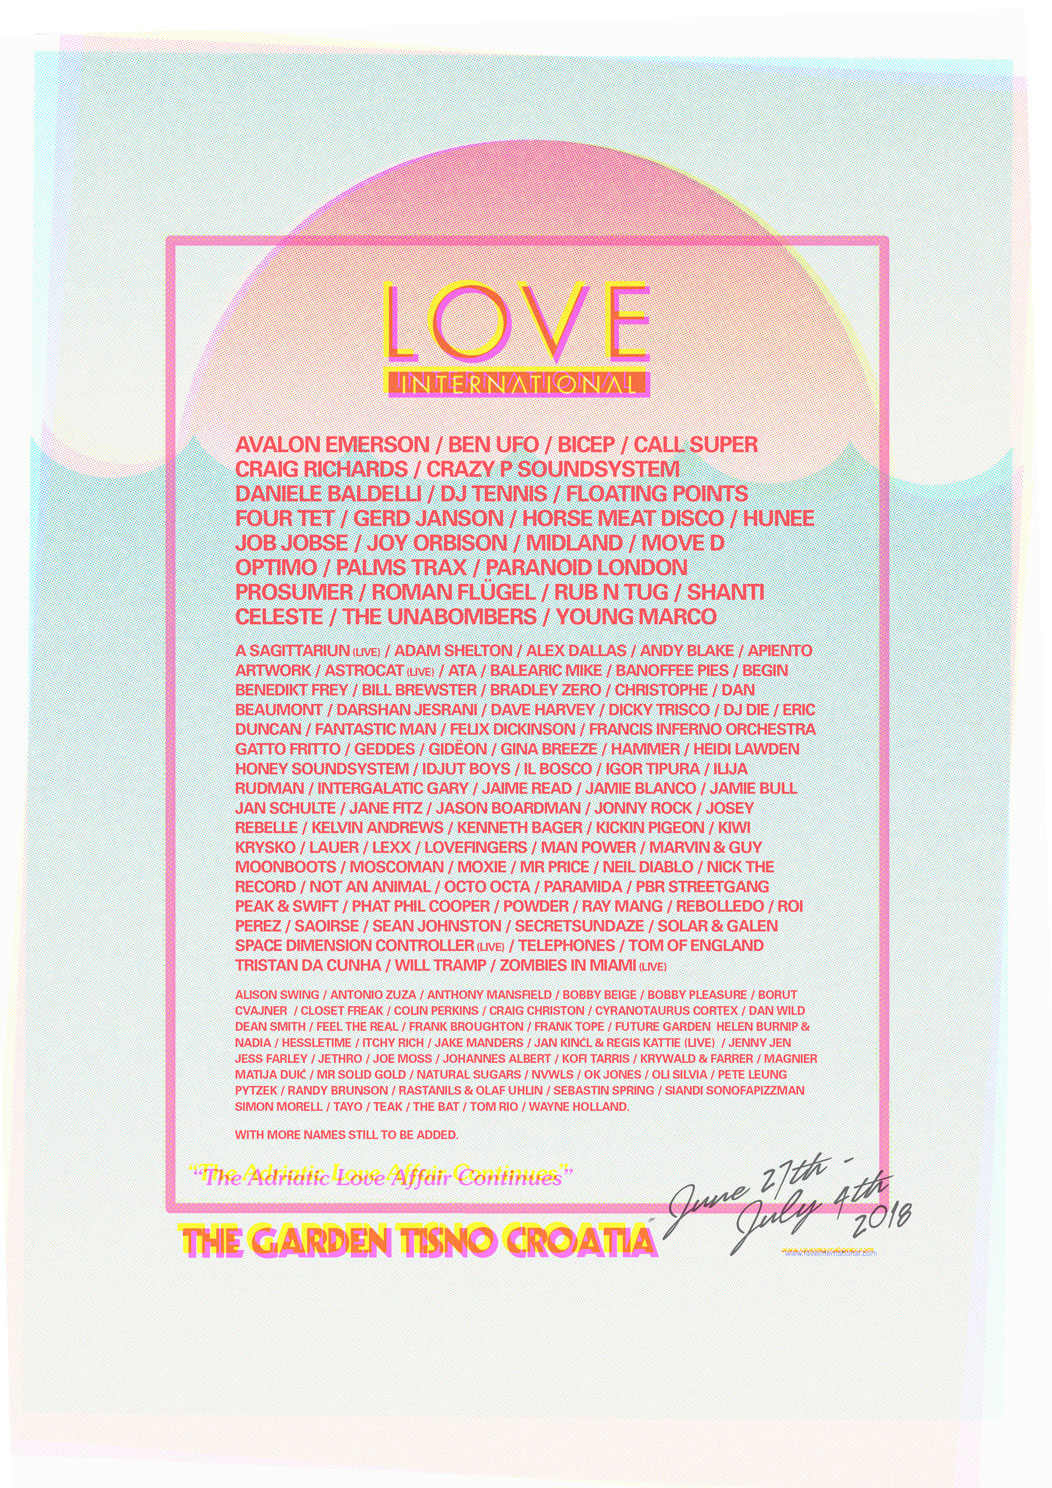 Love International 2018 - latest artists - flyer.jpg